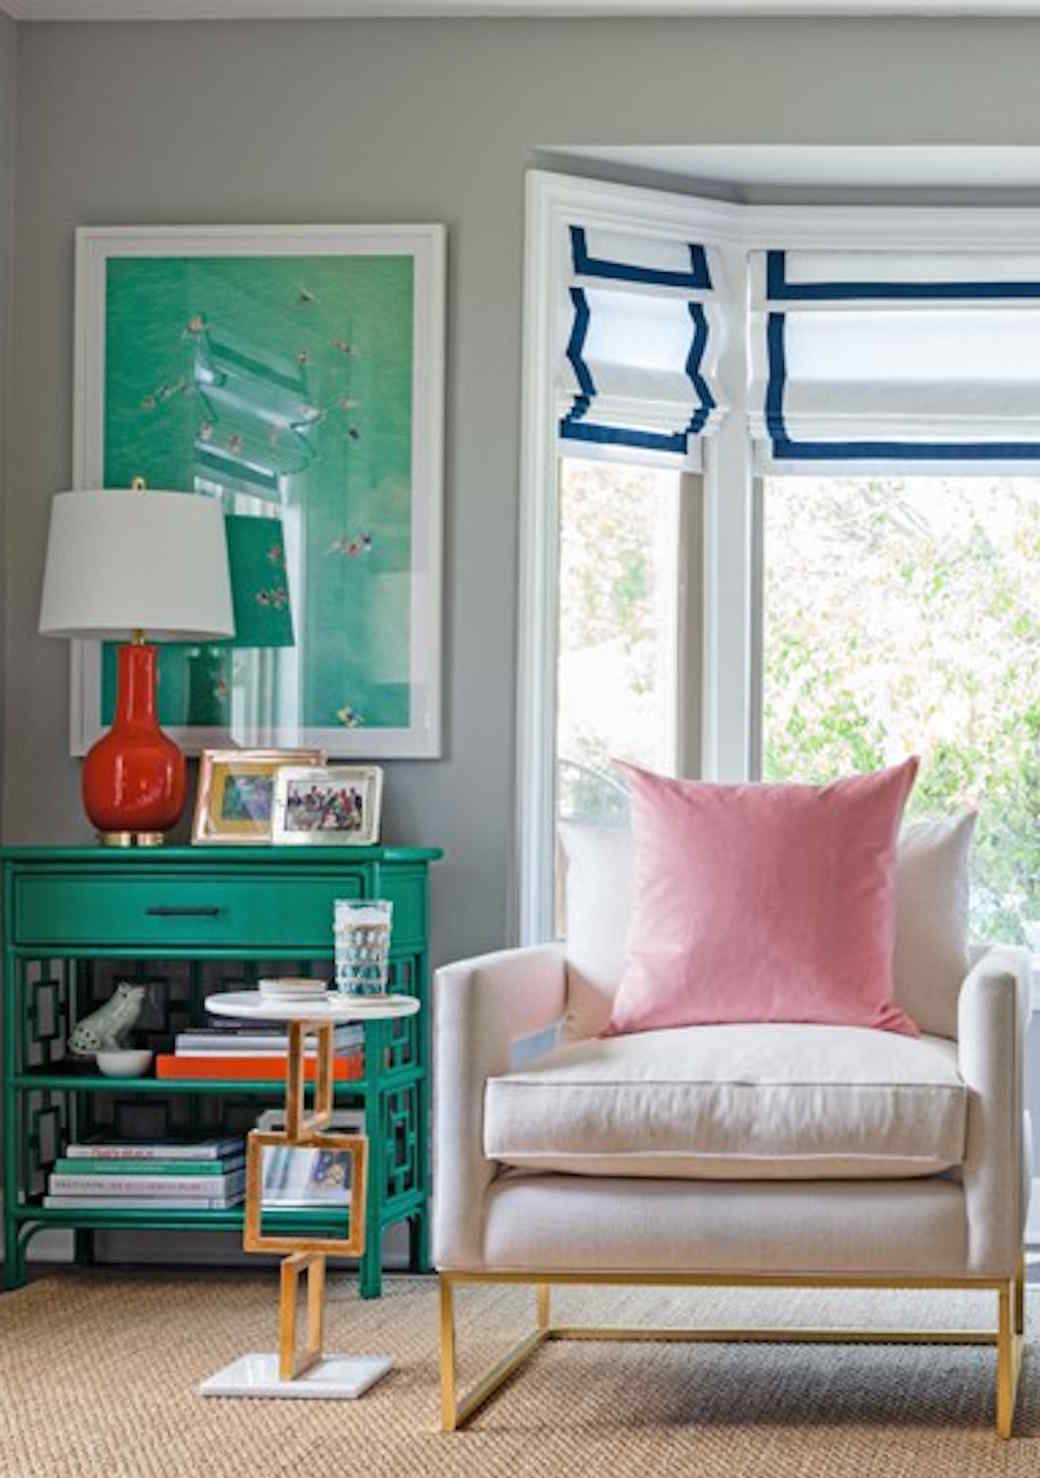 7 Decor Mistakes To Avoid In A Small Home: Martha Stewart